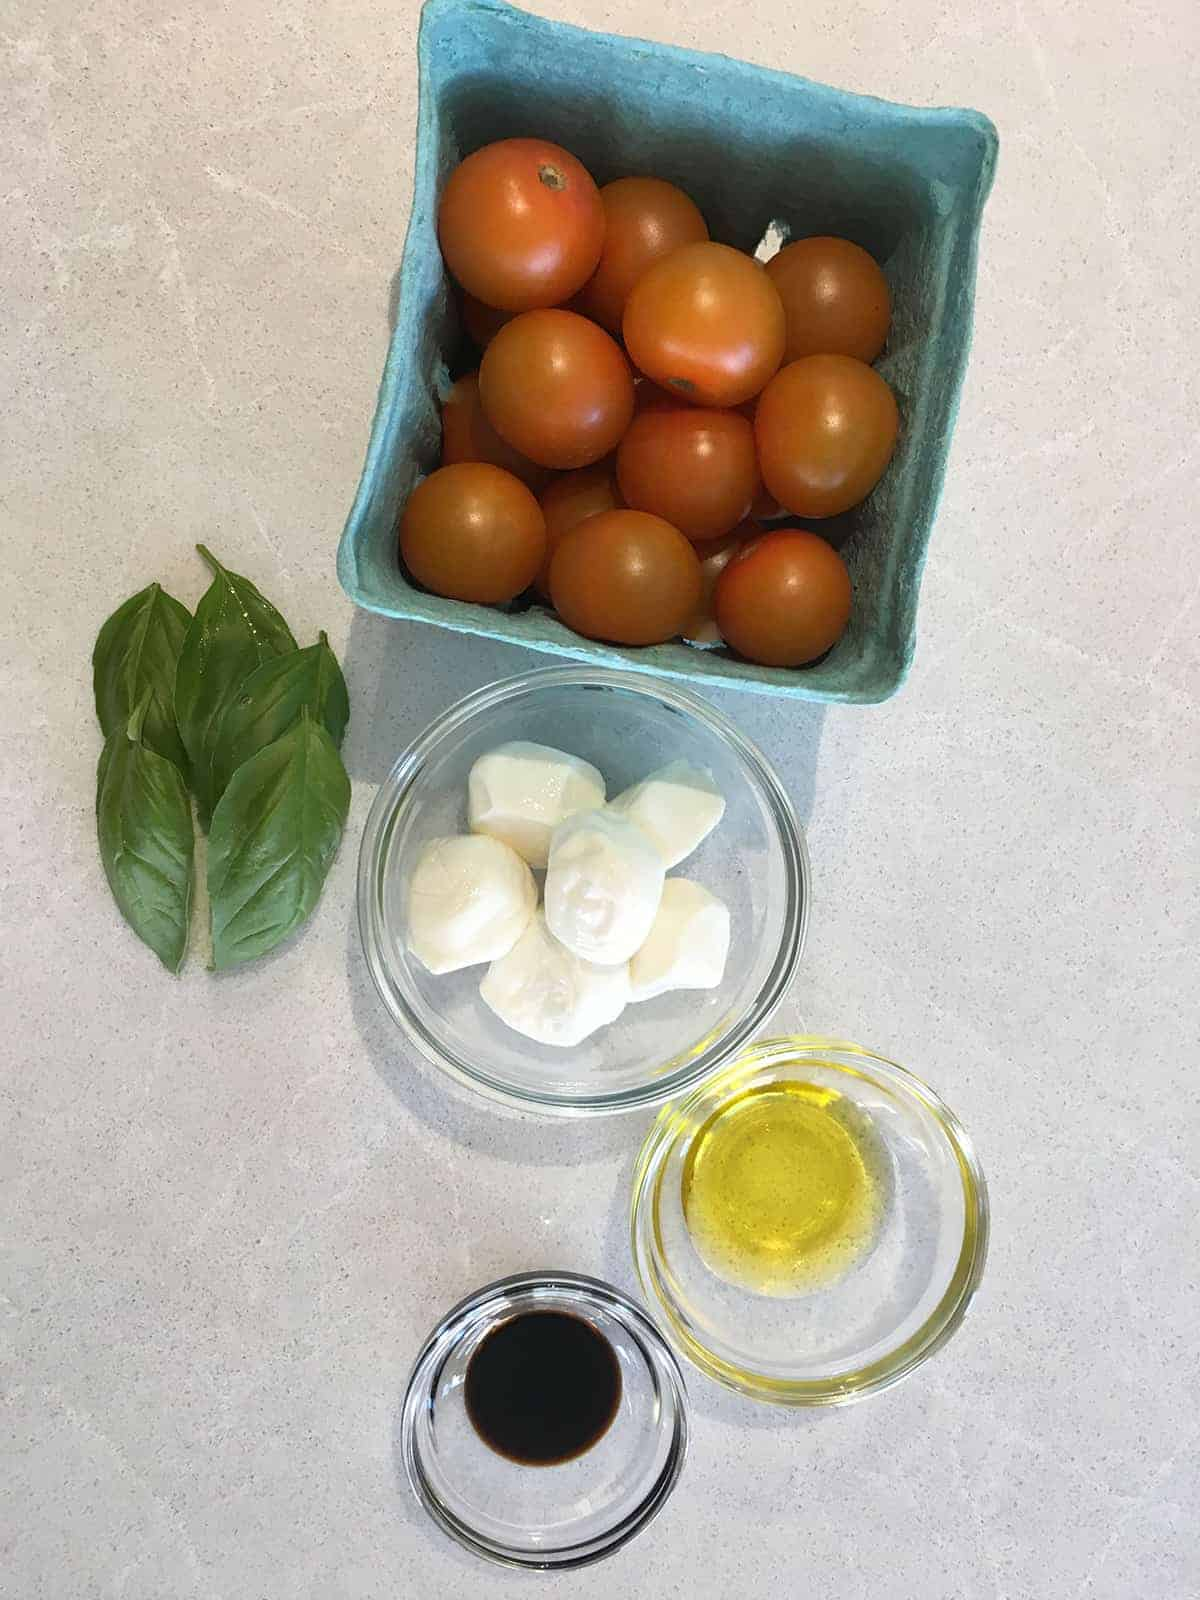 Orange cherry tomatoes, fresh basil leaves, baby mozzarella balls, olive oil and balsamic vinegar atop a light grey marble countertop